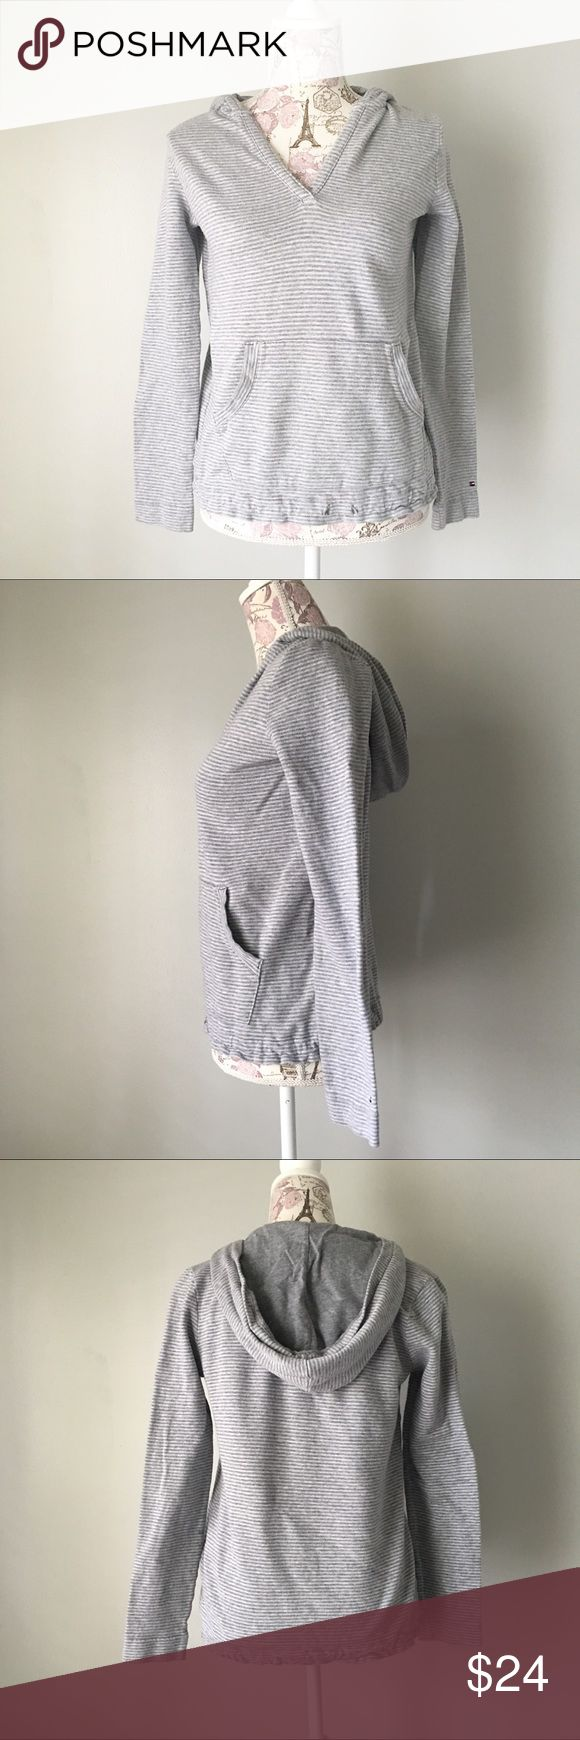 Tommy Hilfiger Gray Striped Hoodie Tommy Hilfiger gray and white striped hooded sweatshirt. Front pockets. Bottom drawstring is missing otherwise great condition. Size S Tommy Hilfiger Tops Sweatshirts & Hoodies